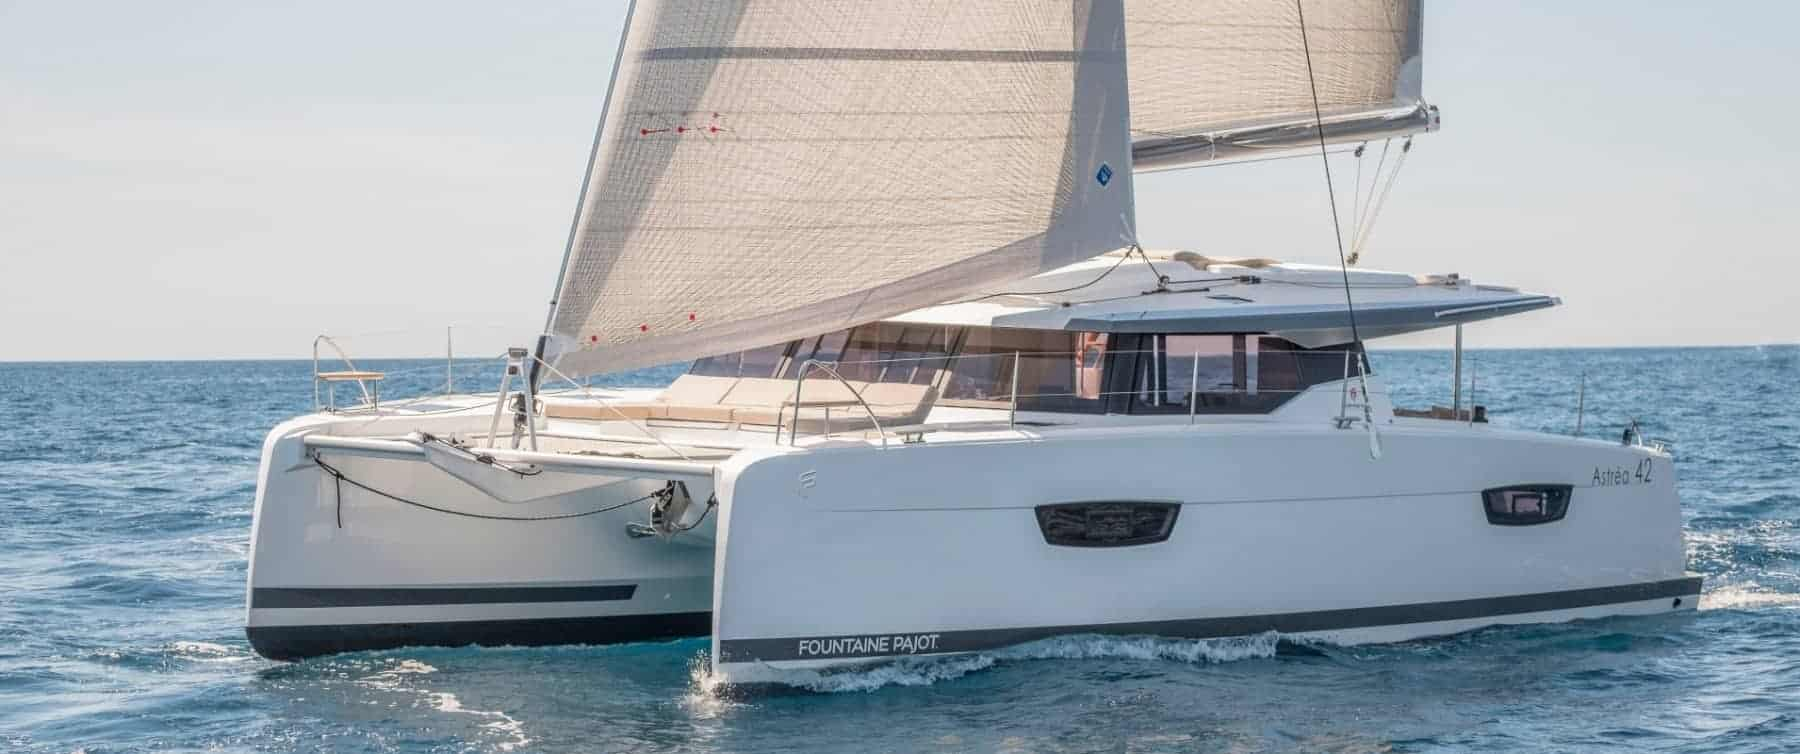 The Fountaine Pajot Astrea 42 in action sliding through the waves